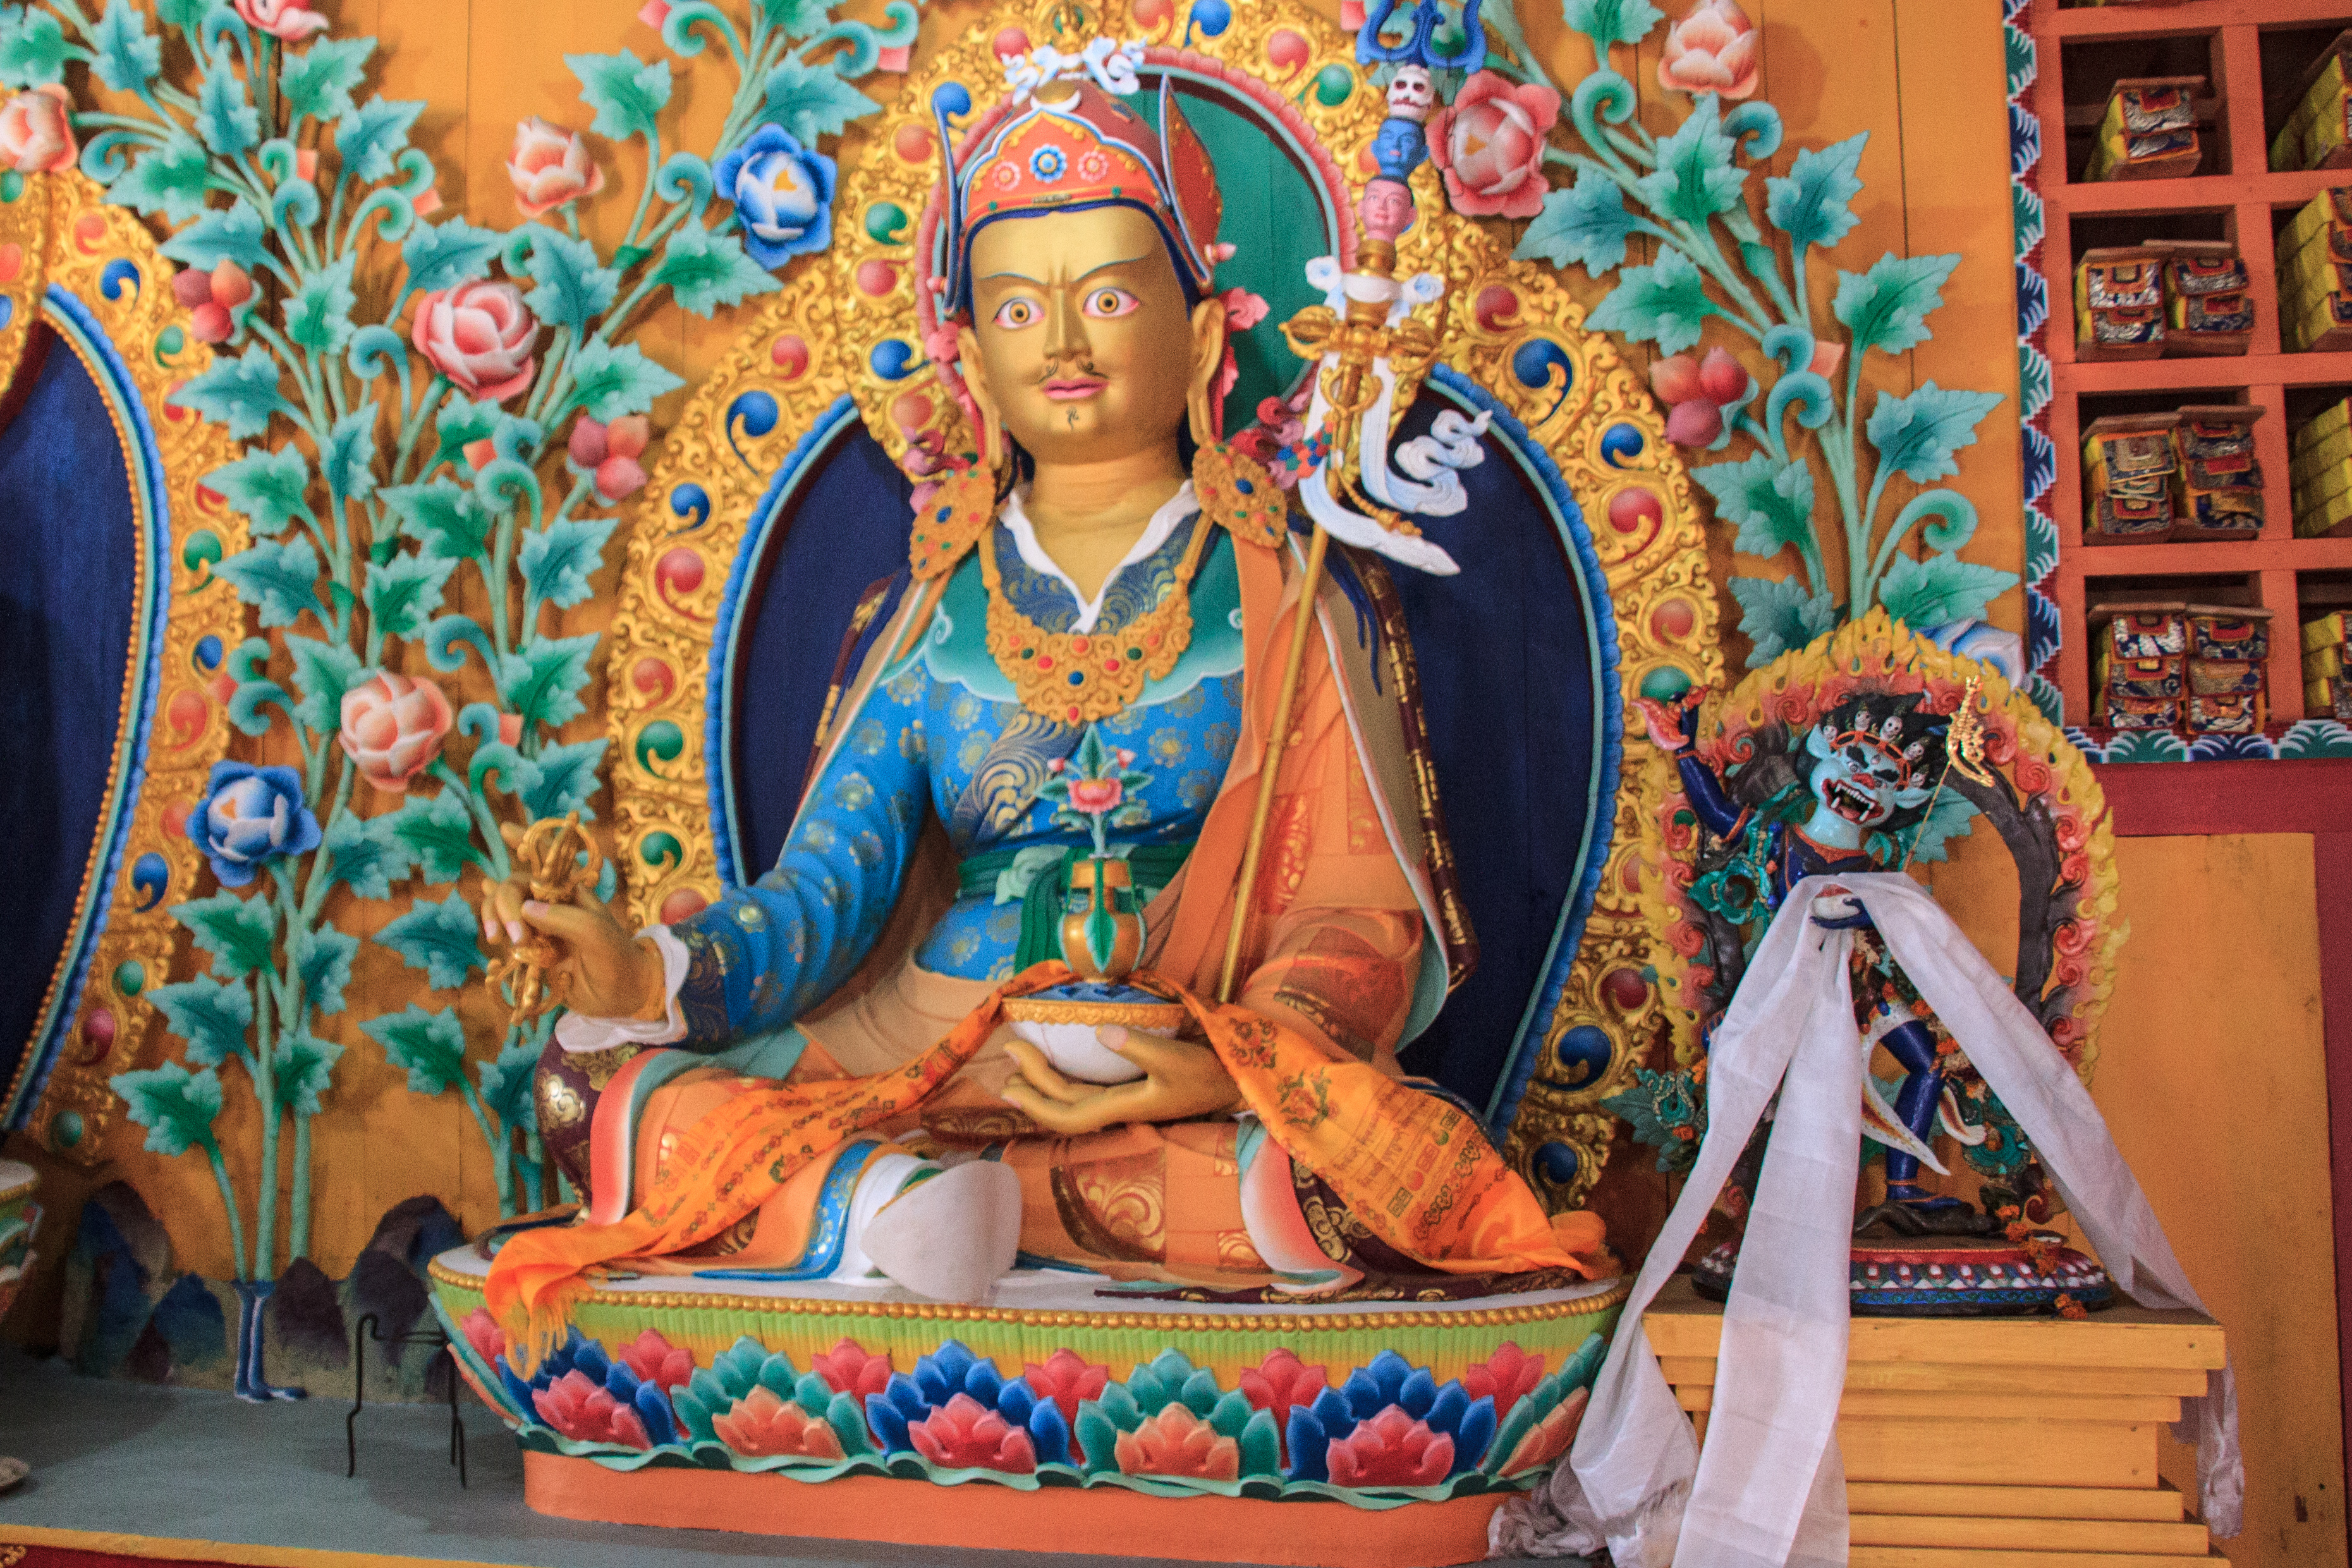 Budhist figure Inside a typical Monastery